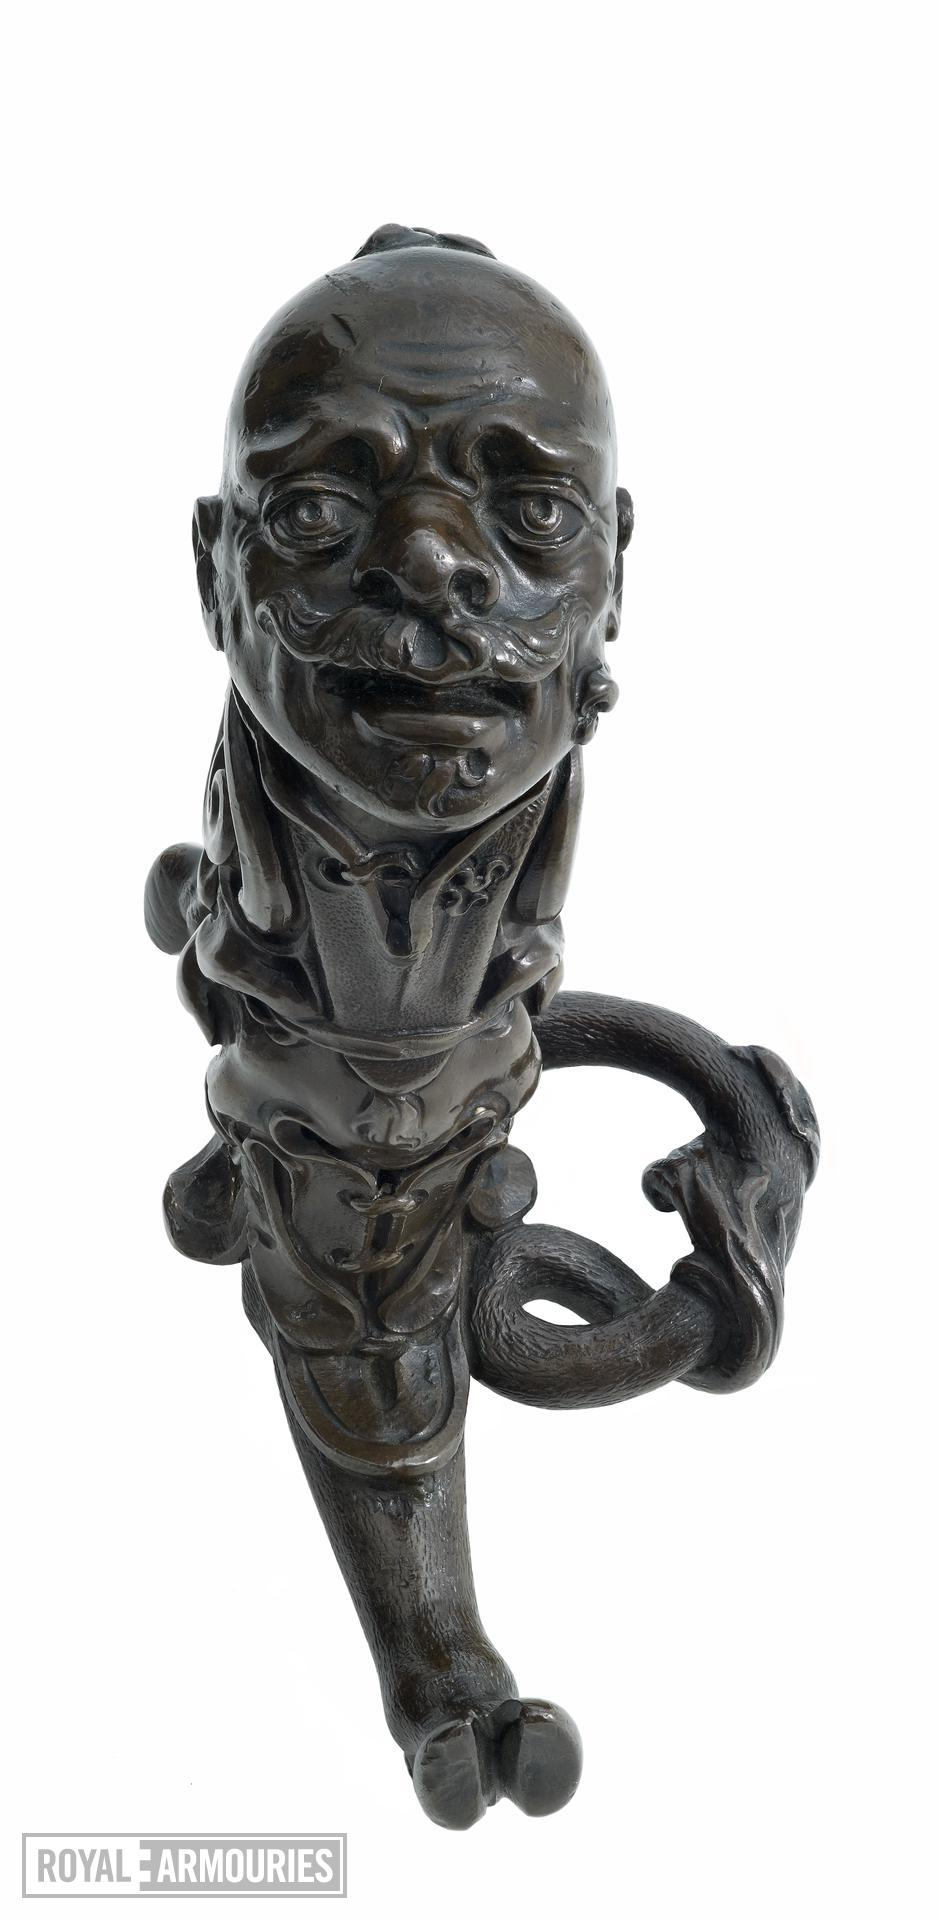 Sword hilt - attributed to Giambologna or Pietro Tacca. Sword hilt in bronze with pommel in form of 'Turkish'/ 'Moorish' head.